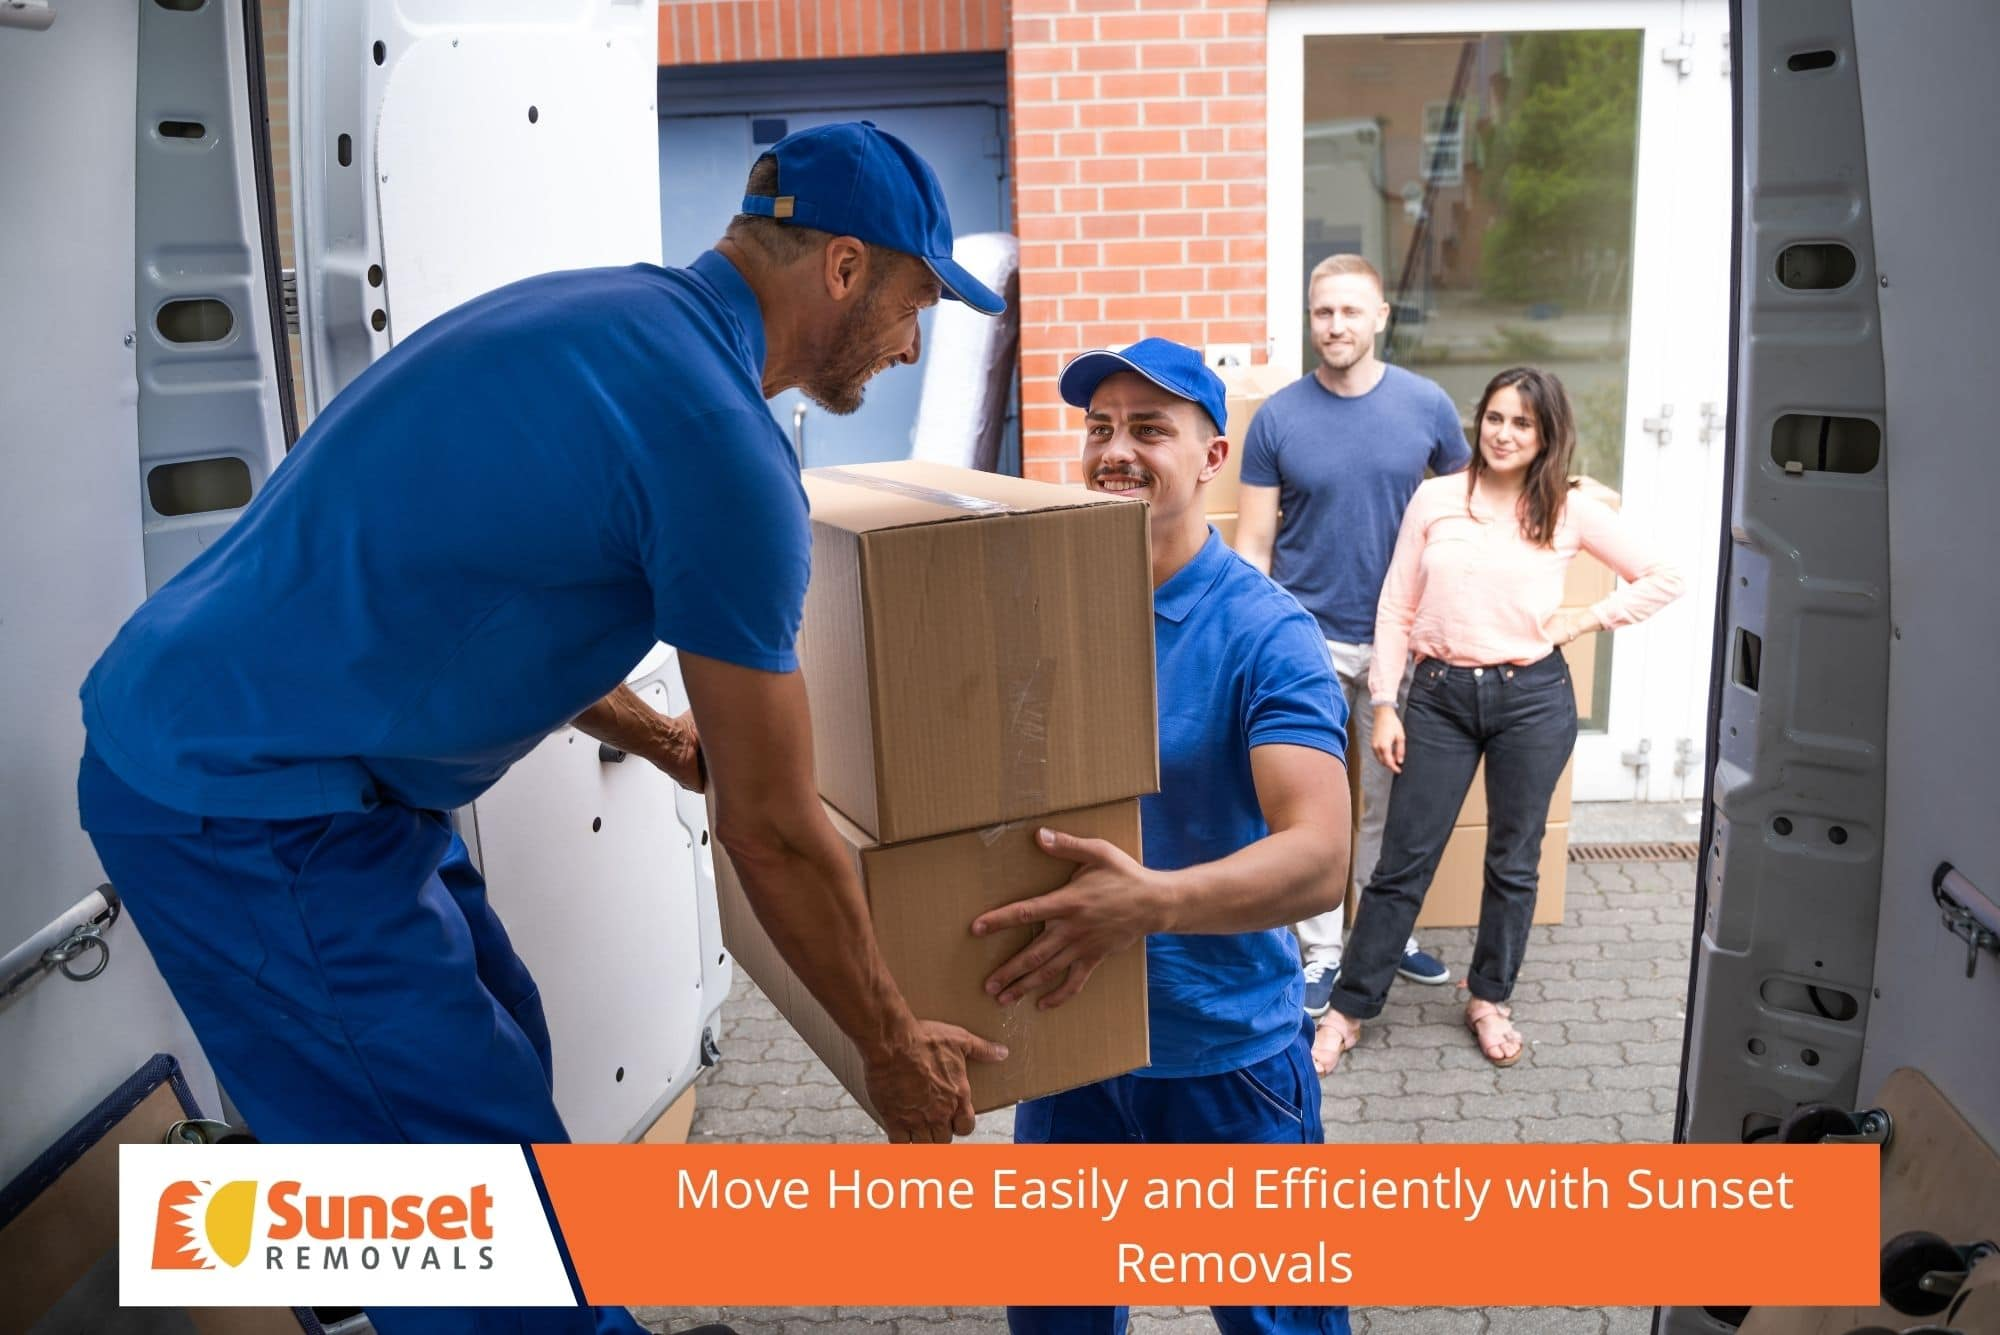 Move Home Easily and Efficiently with Sunset Removals